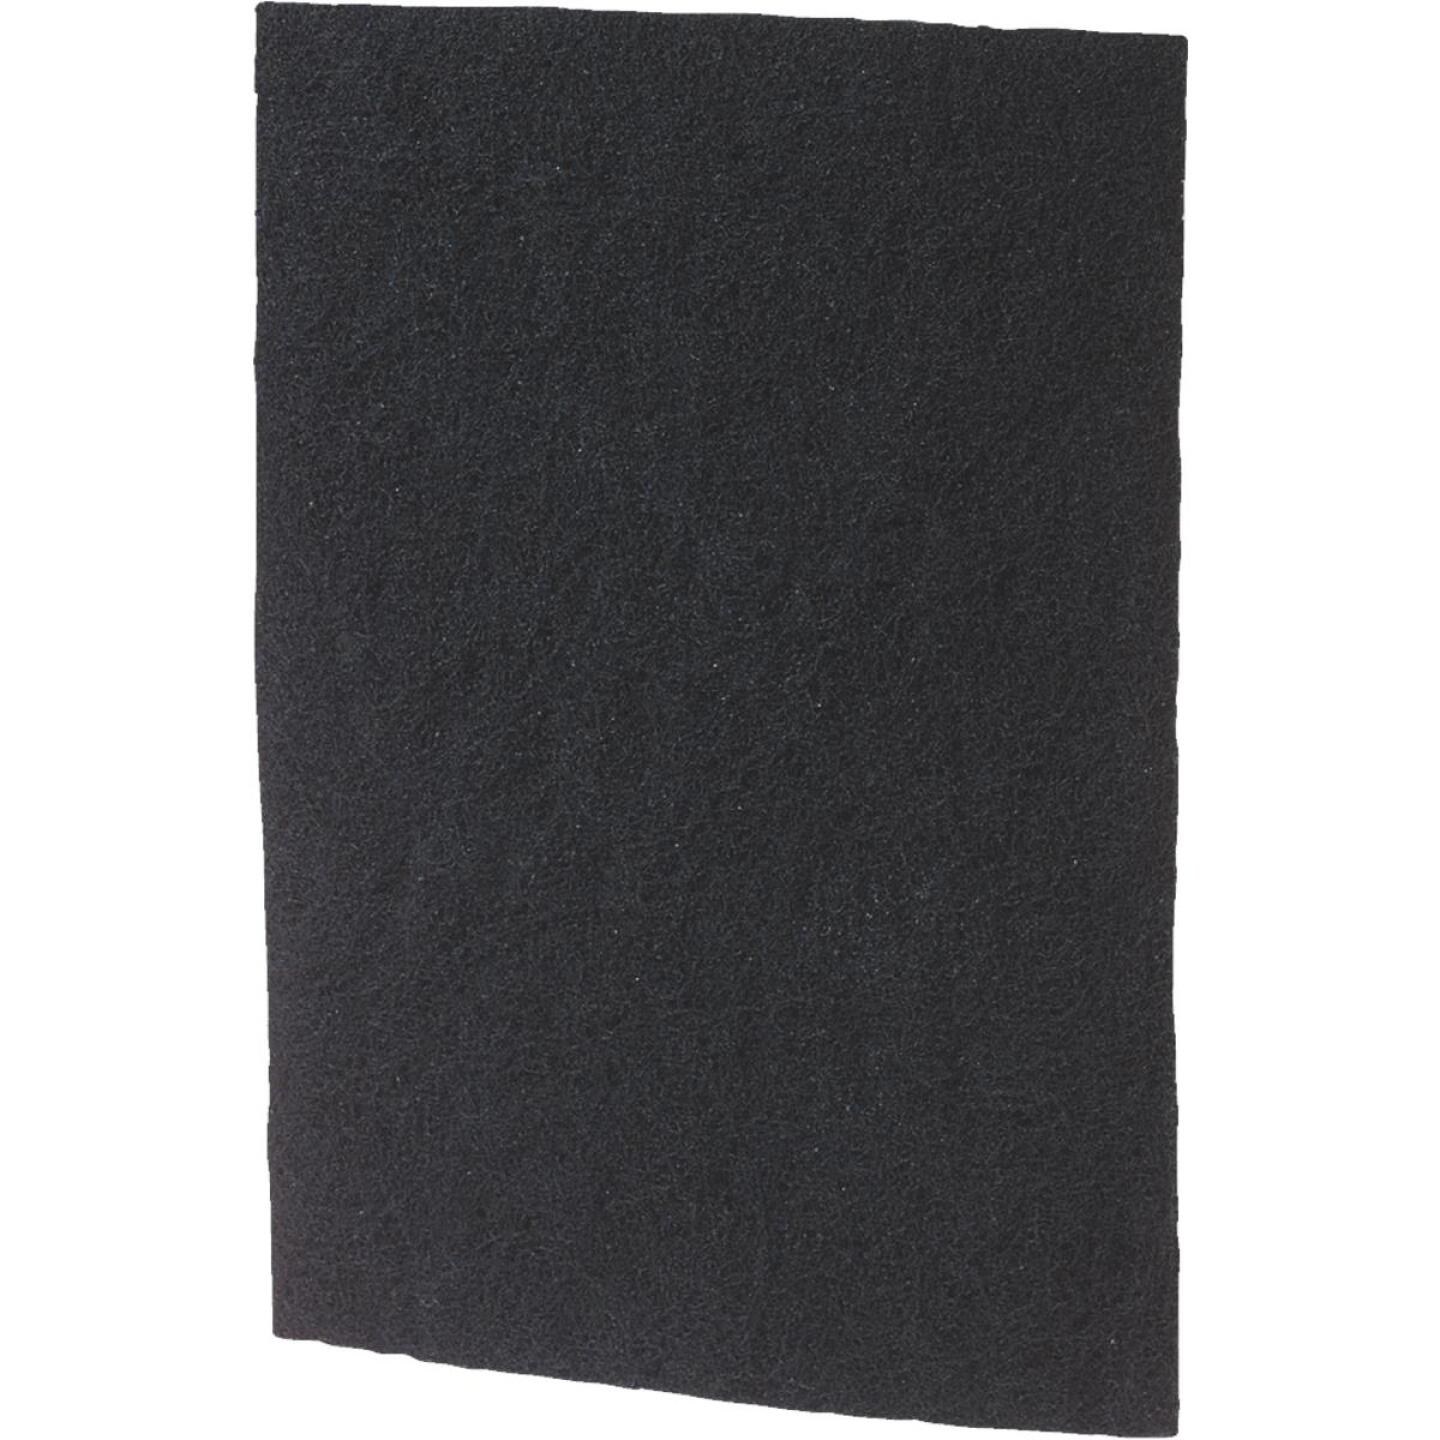 Holmes Replacement 3 to 6 Month Carbon Filter Image 1